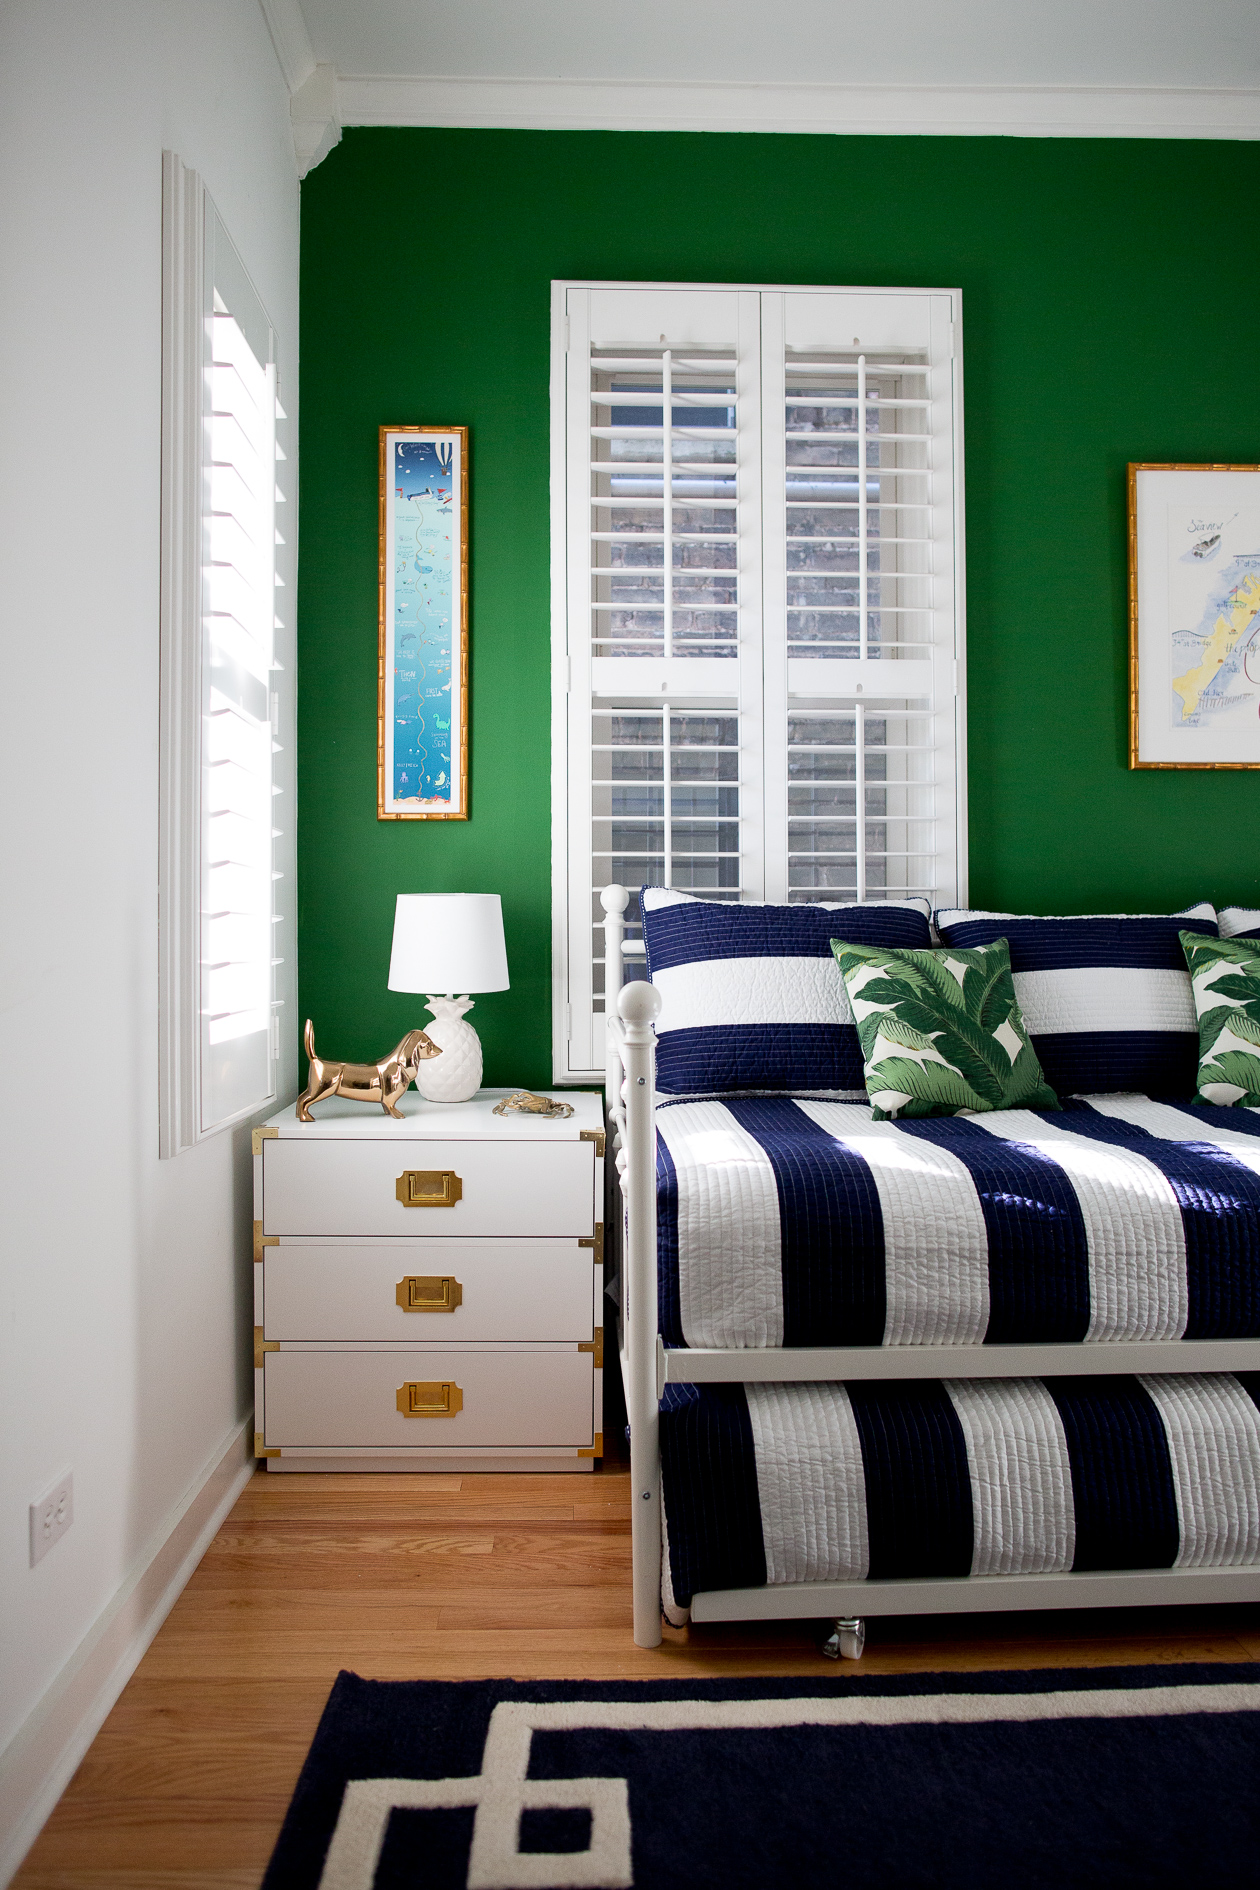 preppy-green-walls-gold-frames-30